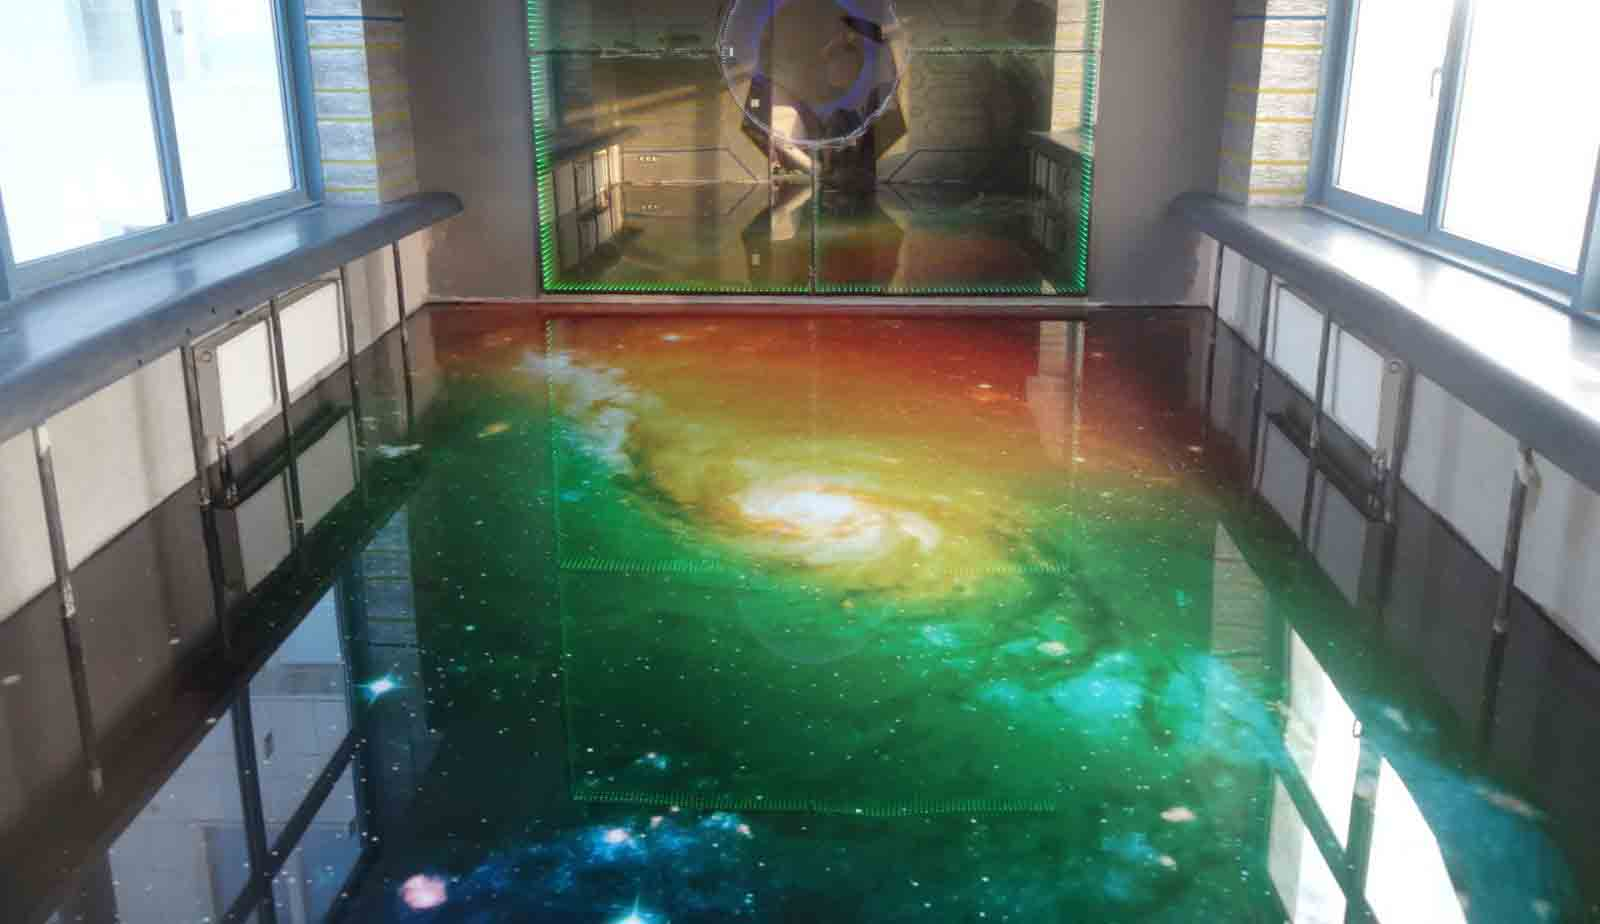 Amazing 3d floor tiles best 3d tile images for bathroom 3d floor tiles designs images ideas patterns for all rooms dailygadgetfo Gallery